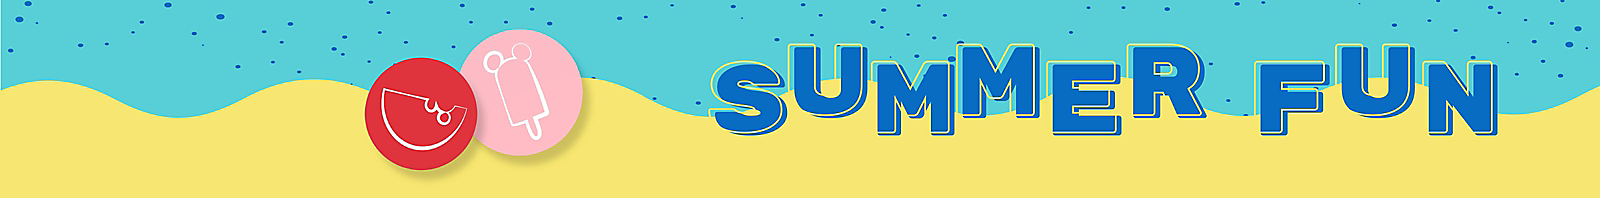 Summer fun colorful banner